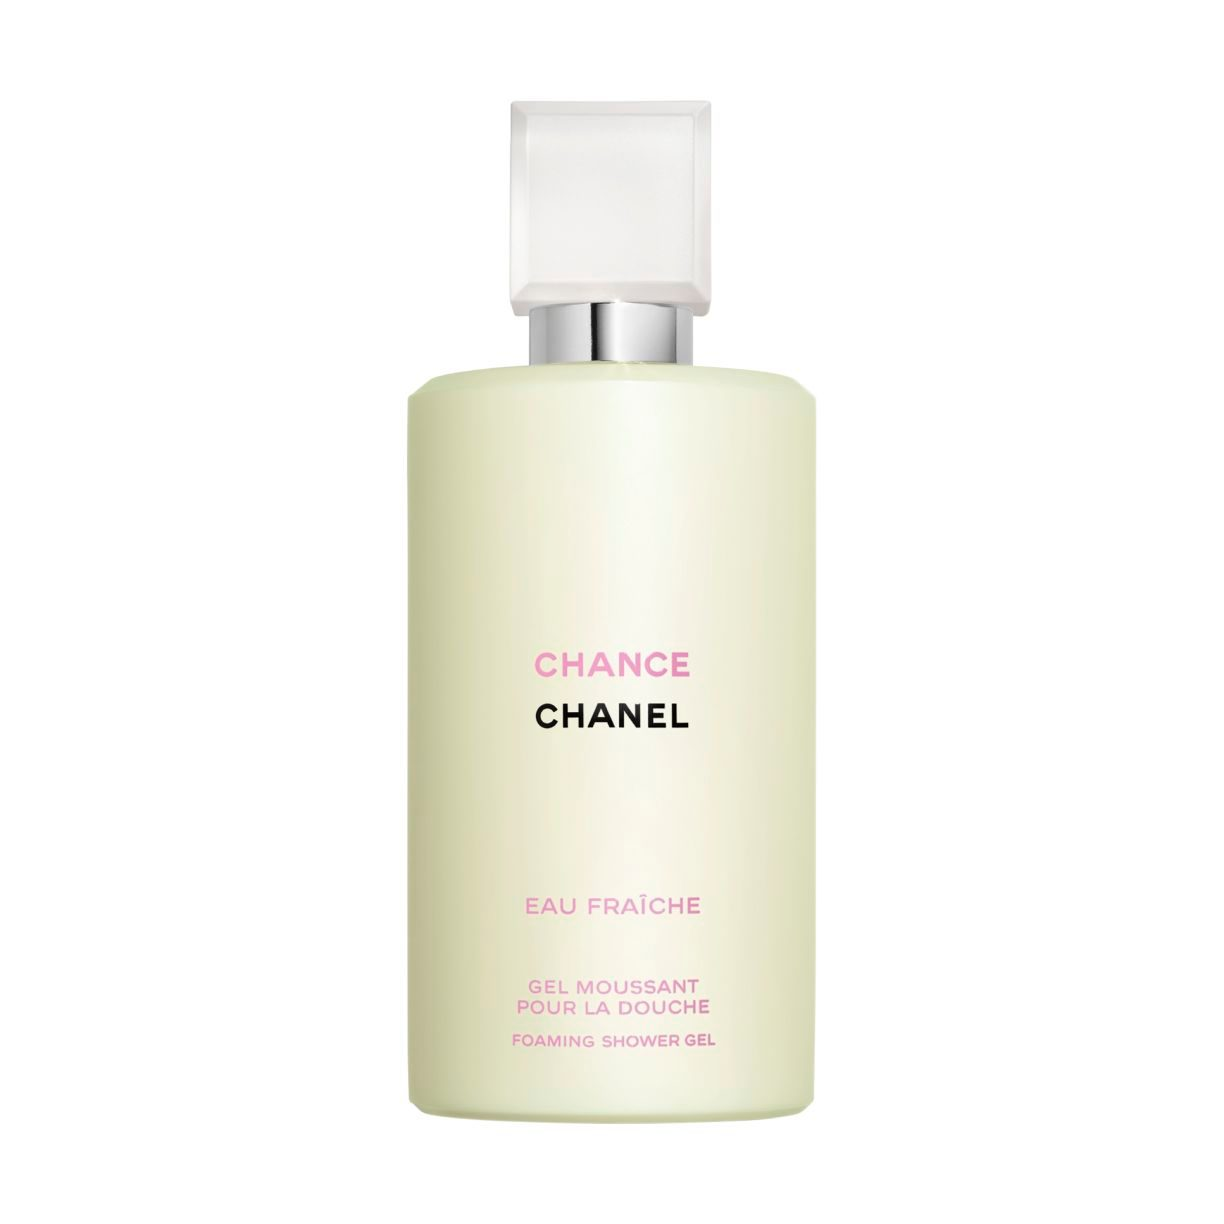 CHANCE EAU FRAICHE FOAMING SHOWER GEL